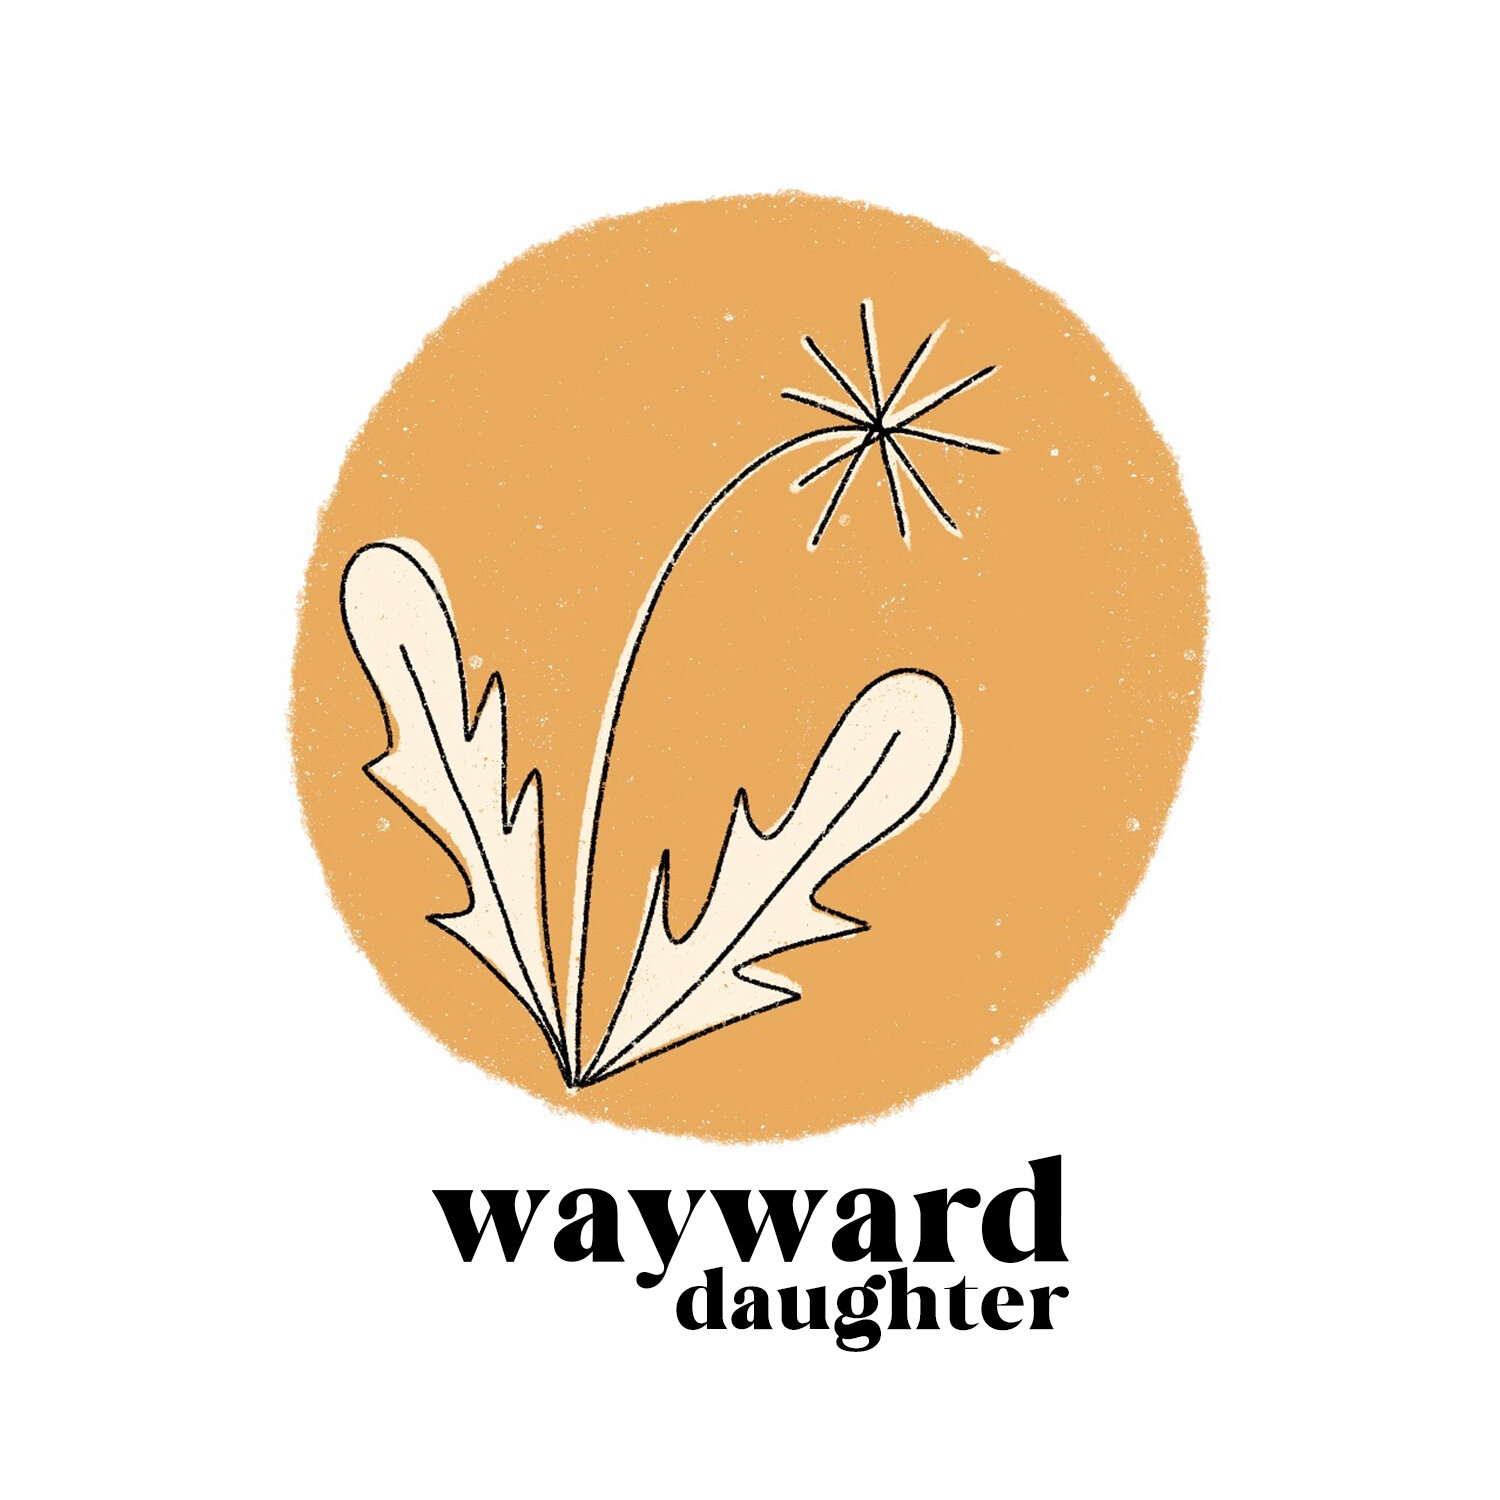 wayward daughter